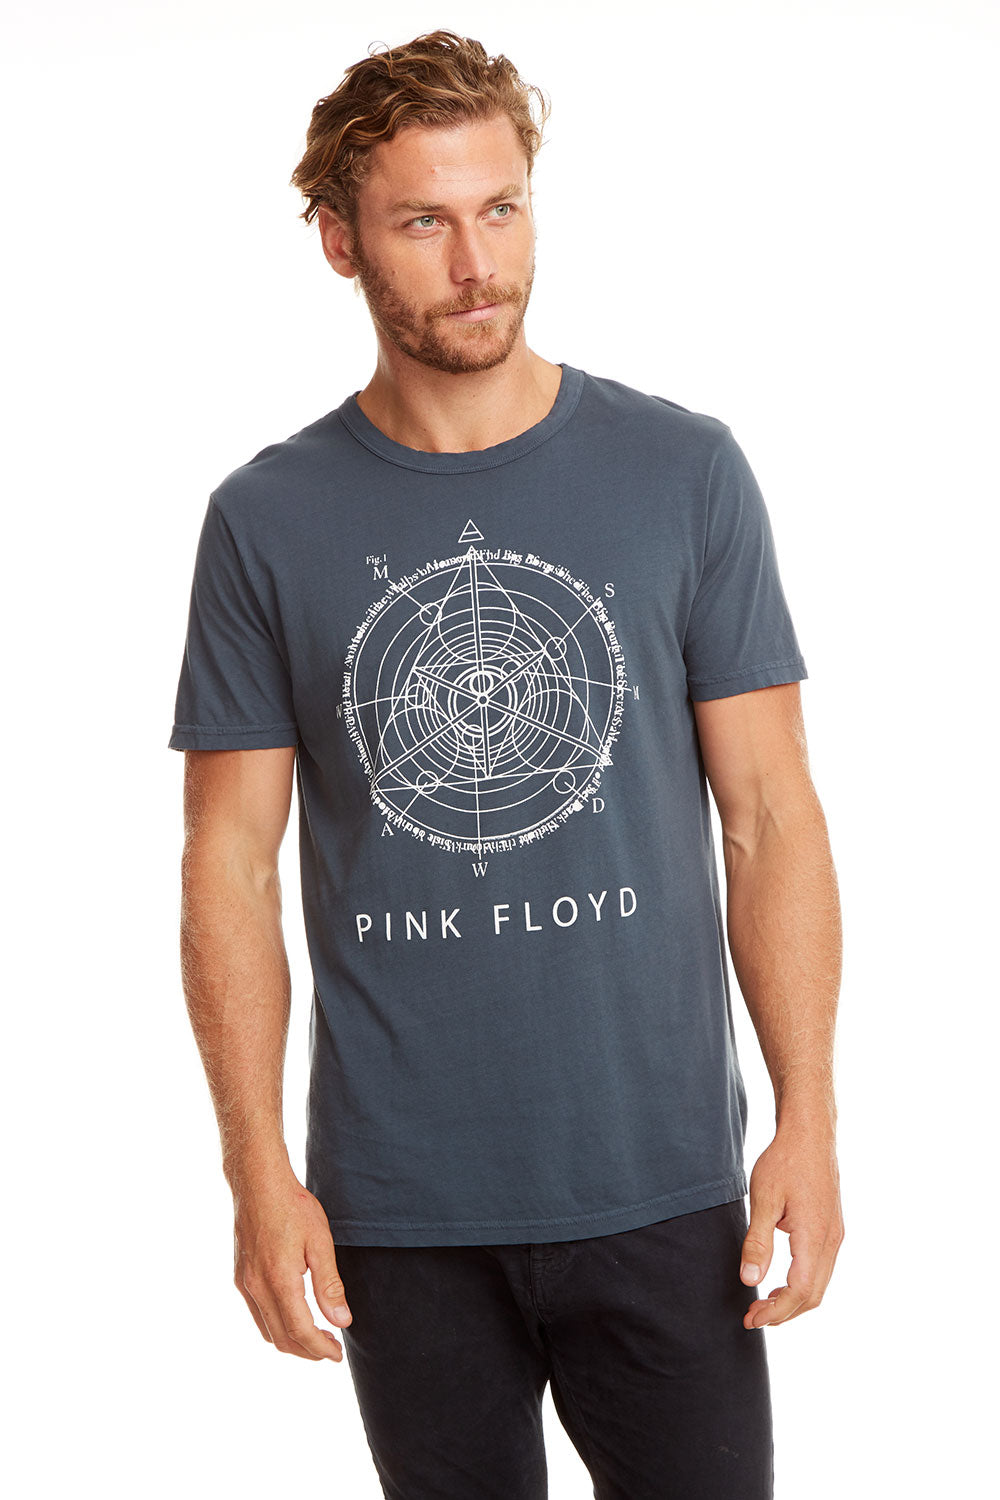 Pink Floyd - Triangulate MENS - chaserbrand